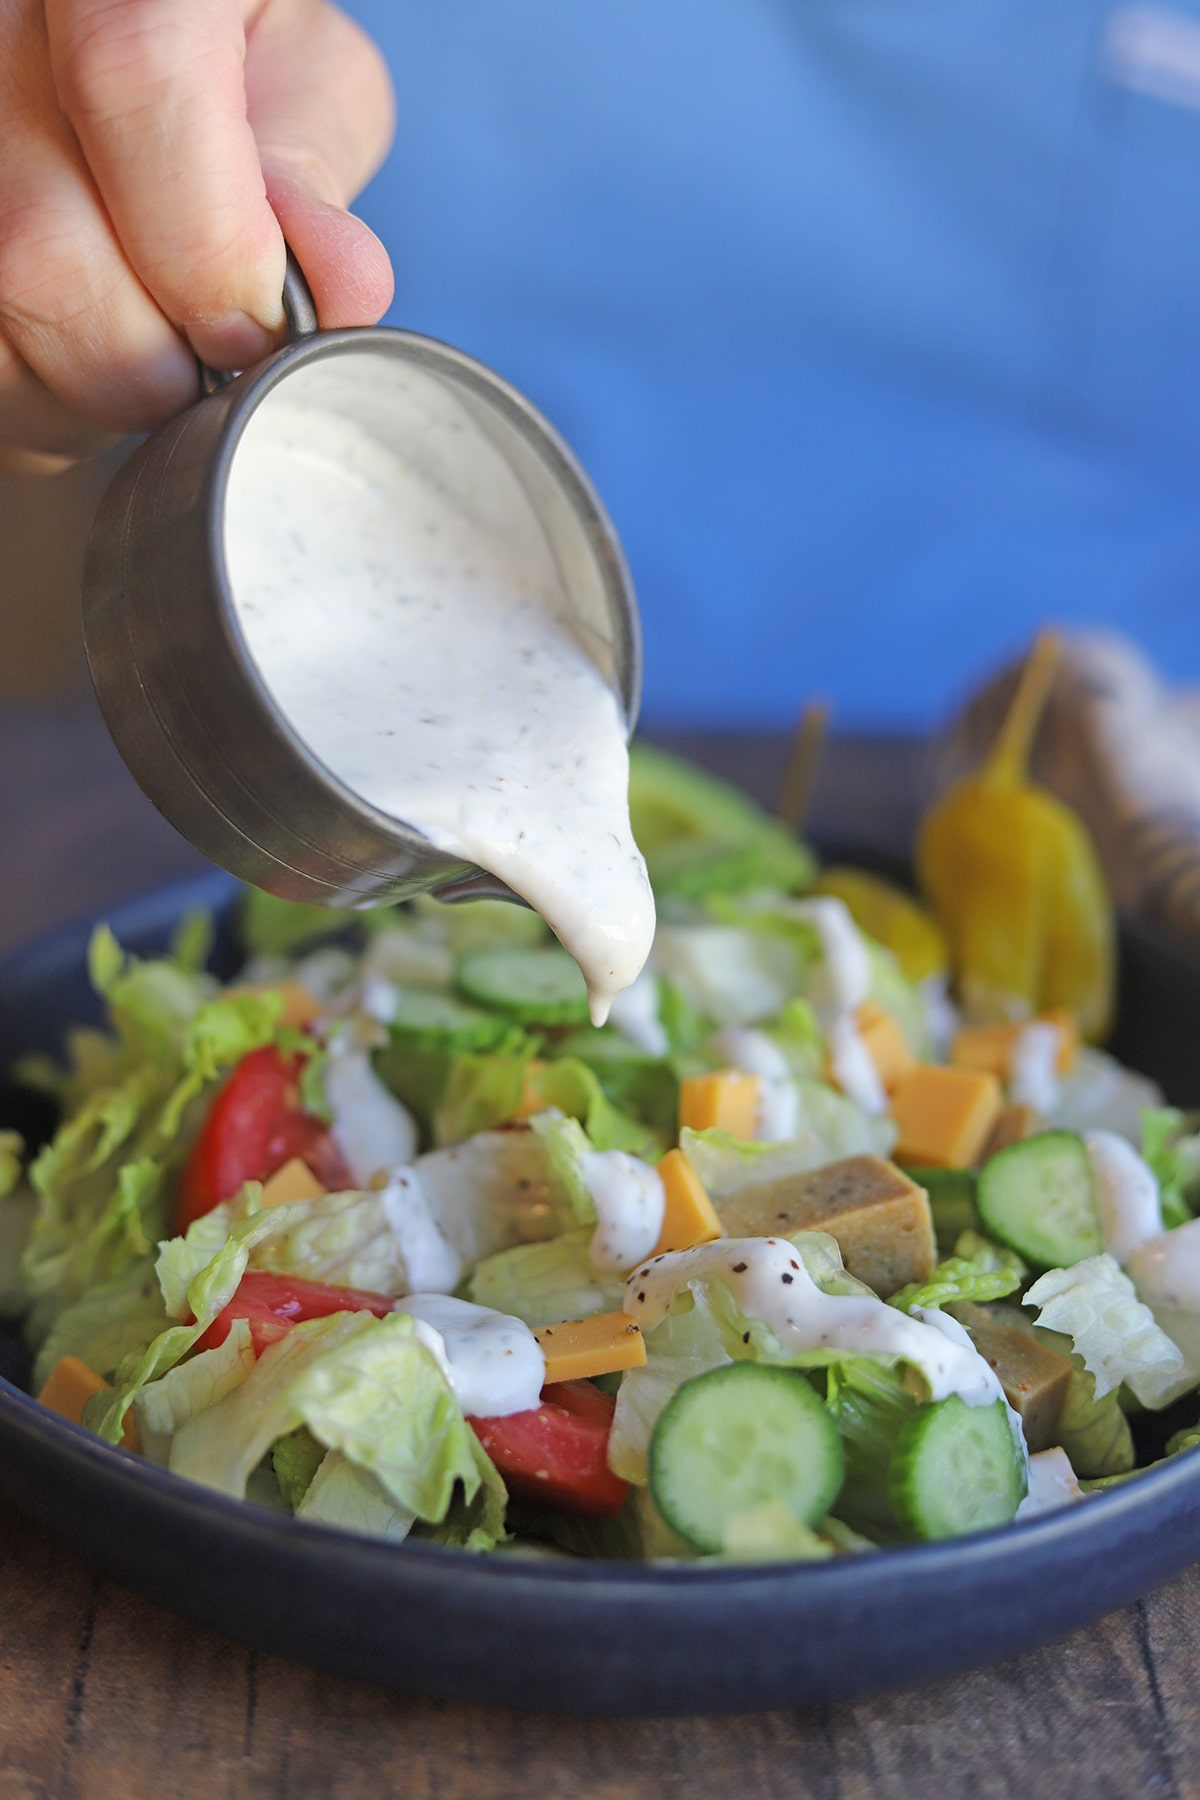 Hand pouring dressing onto salad.